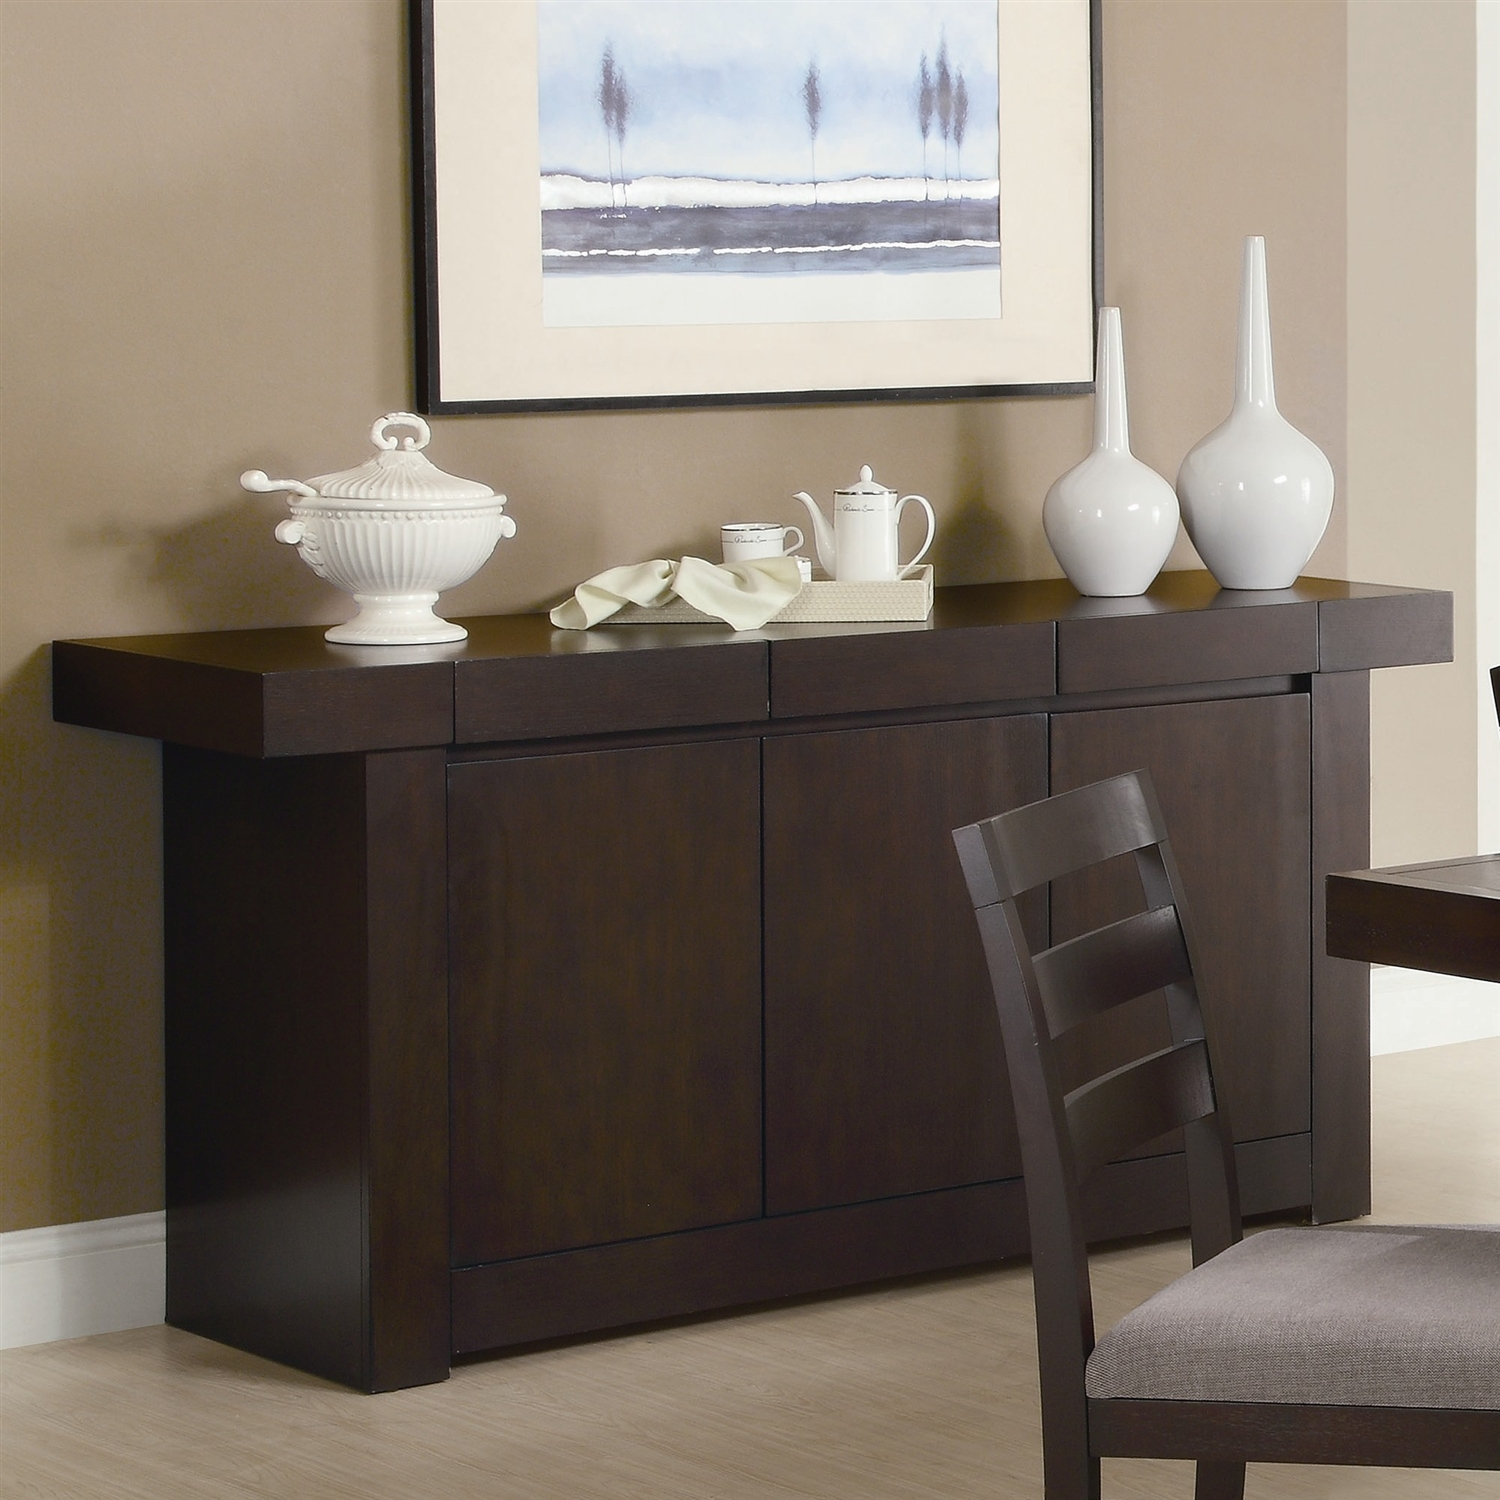 The storage drawers and space inside the cabinet doors make this Modern Dining Room Sideboard Server Table Cabinet in Cappuccino a fantastic addition to your dining room. The spacious top surface is ideal for a buffet of food for dinner guests or displaying some of your favorite accents. The ash solids and hardwoods provide a natural appeal to this server. Distressed: No; Open Storage: Yes; Drawers Included: Yes; Cabinets Included: Yes; Doors Included: Yes; Country of Manufacture: China.